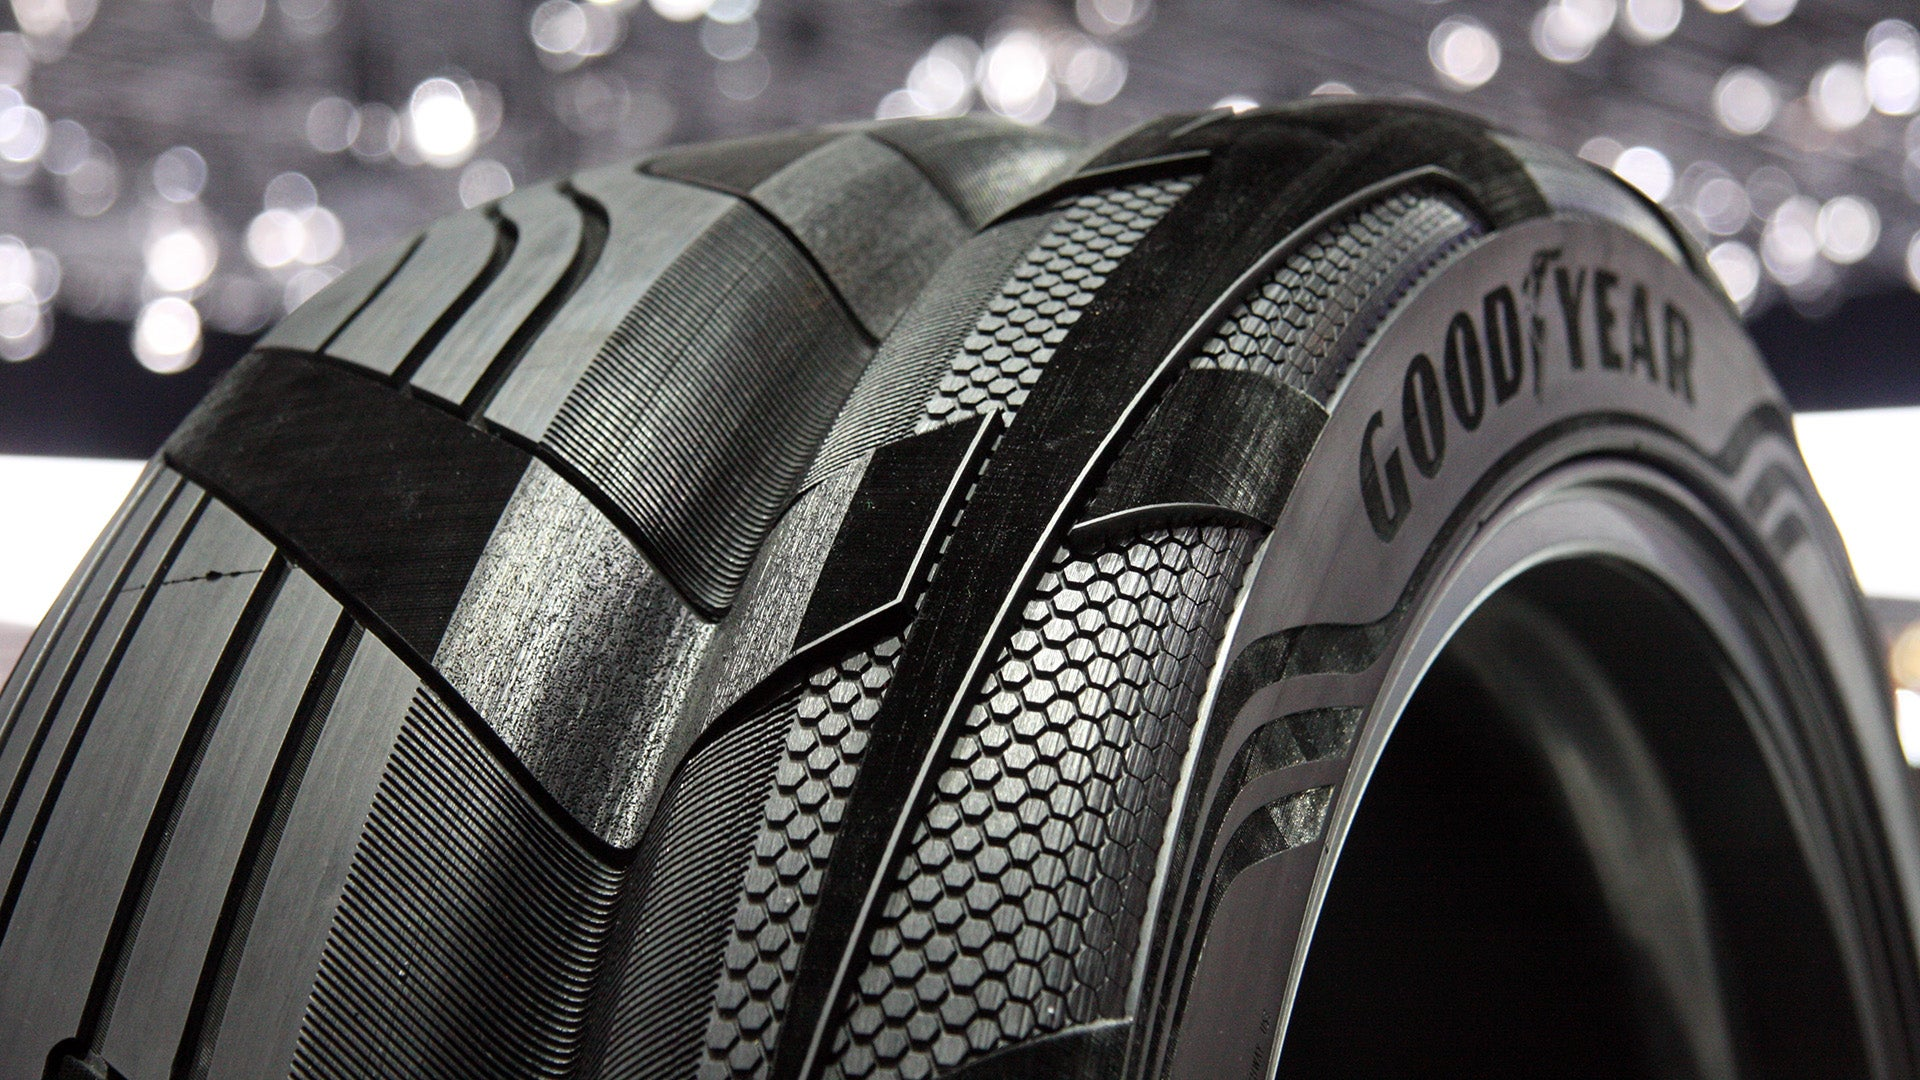 goodyear aquatred Goodyear: aquatred launch case solution, 23 problems goodyear had been a good performer in the field of tires and has dominated the market for long time with the passage of time, the probl.